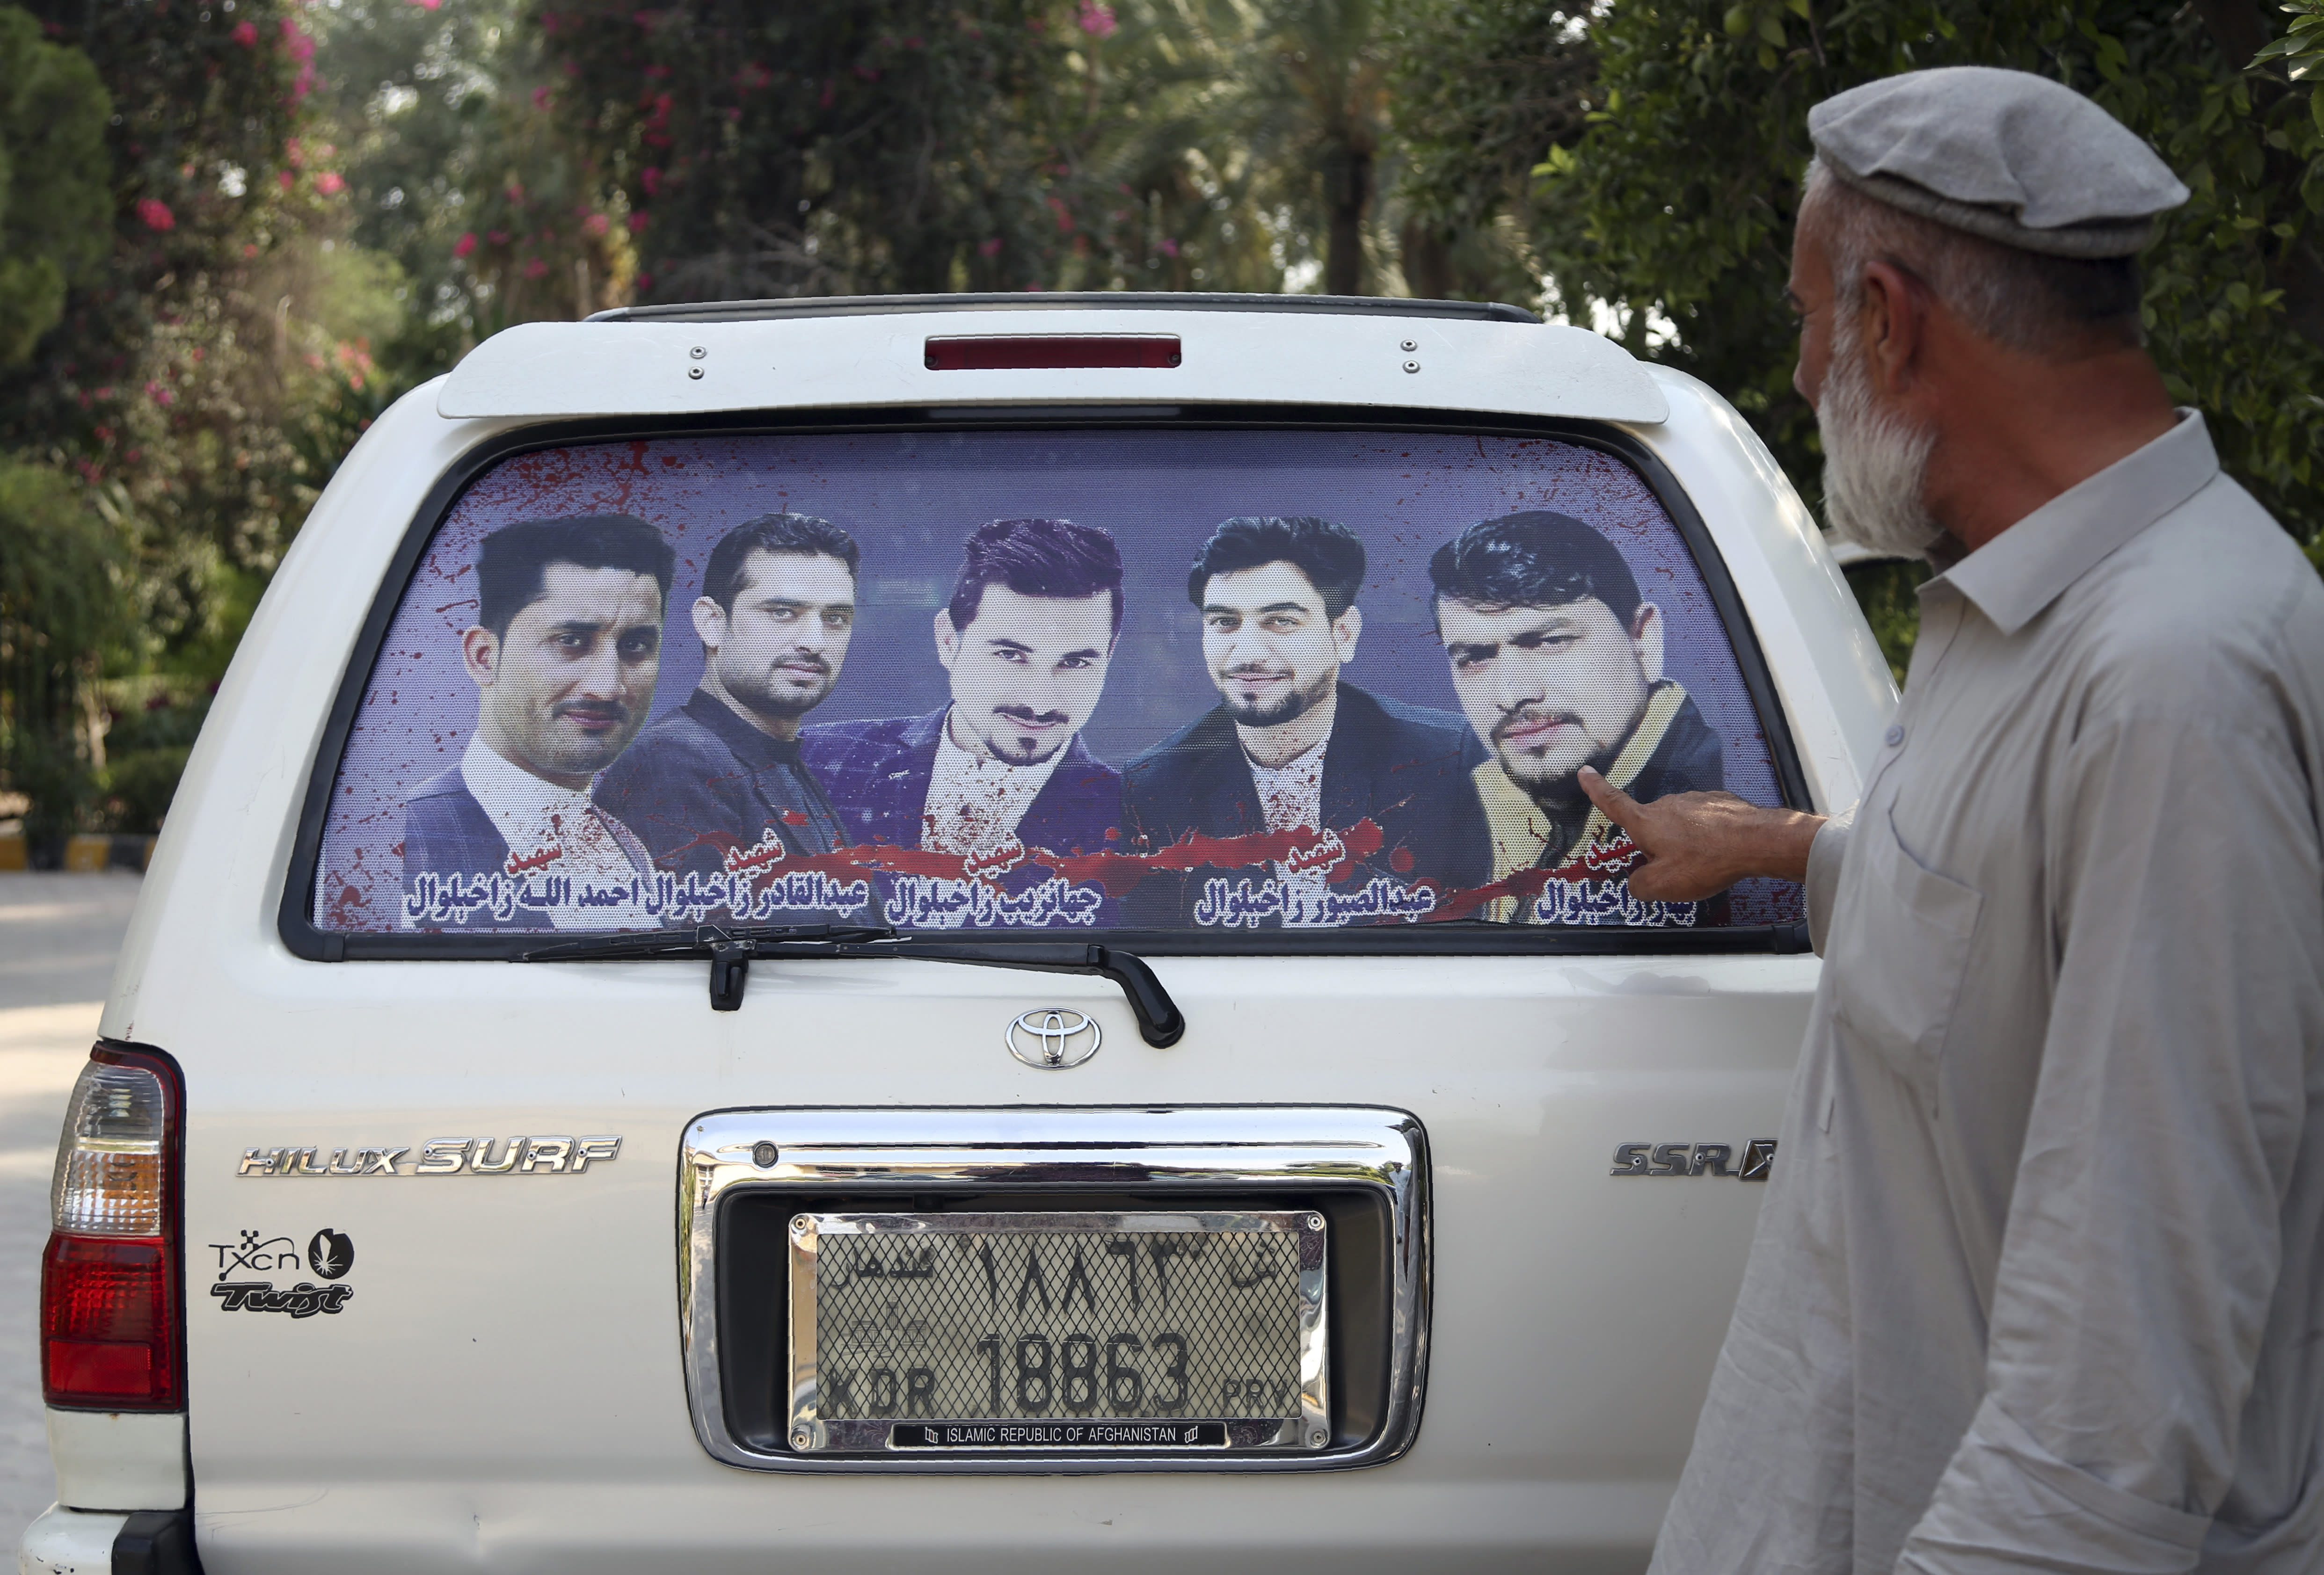 In this Tuesday, Oct. 1, 2019, photo, Zakhiwal's uncle, Mohammad Yaqoob Malikzada shows pictures of four brothers in the back of his car, who ware killed during a raid by the Afghan soldiers trained by CIA only known as Unit 02 after an interview to the Associated Press in Jalalabad city east of Kabul, Afghanistan, Anger is mounting over the increasing numbers of civilians dying in misdirected US aerial strikes and heavy- handed tactics of CIA-trained Afghan force. Some Afghans calling for Americans to be tried in Afghan courts. (AP Photo/Rahmat Gul)